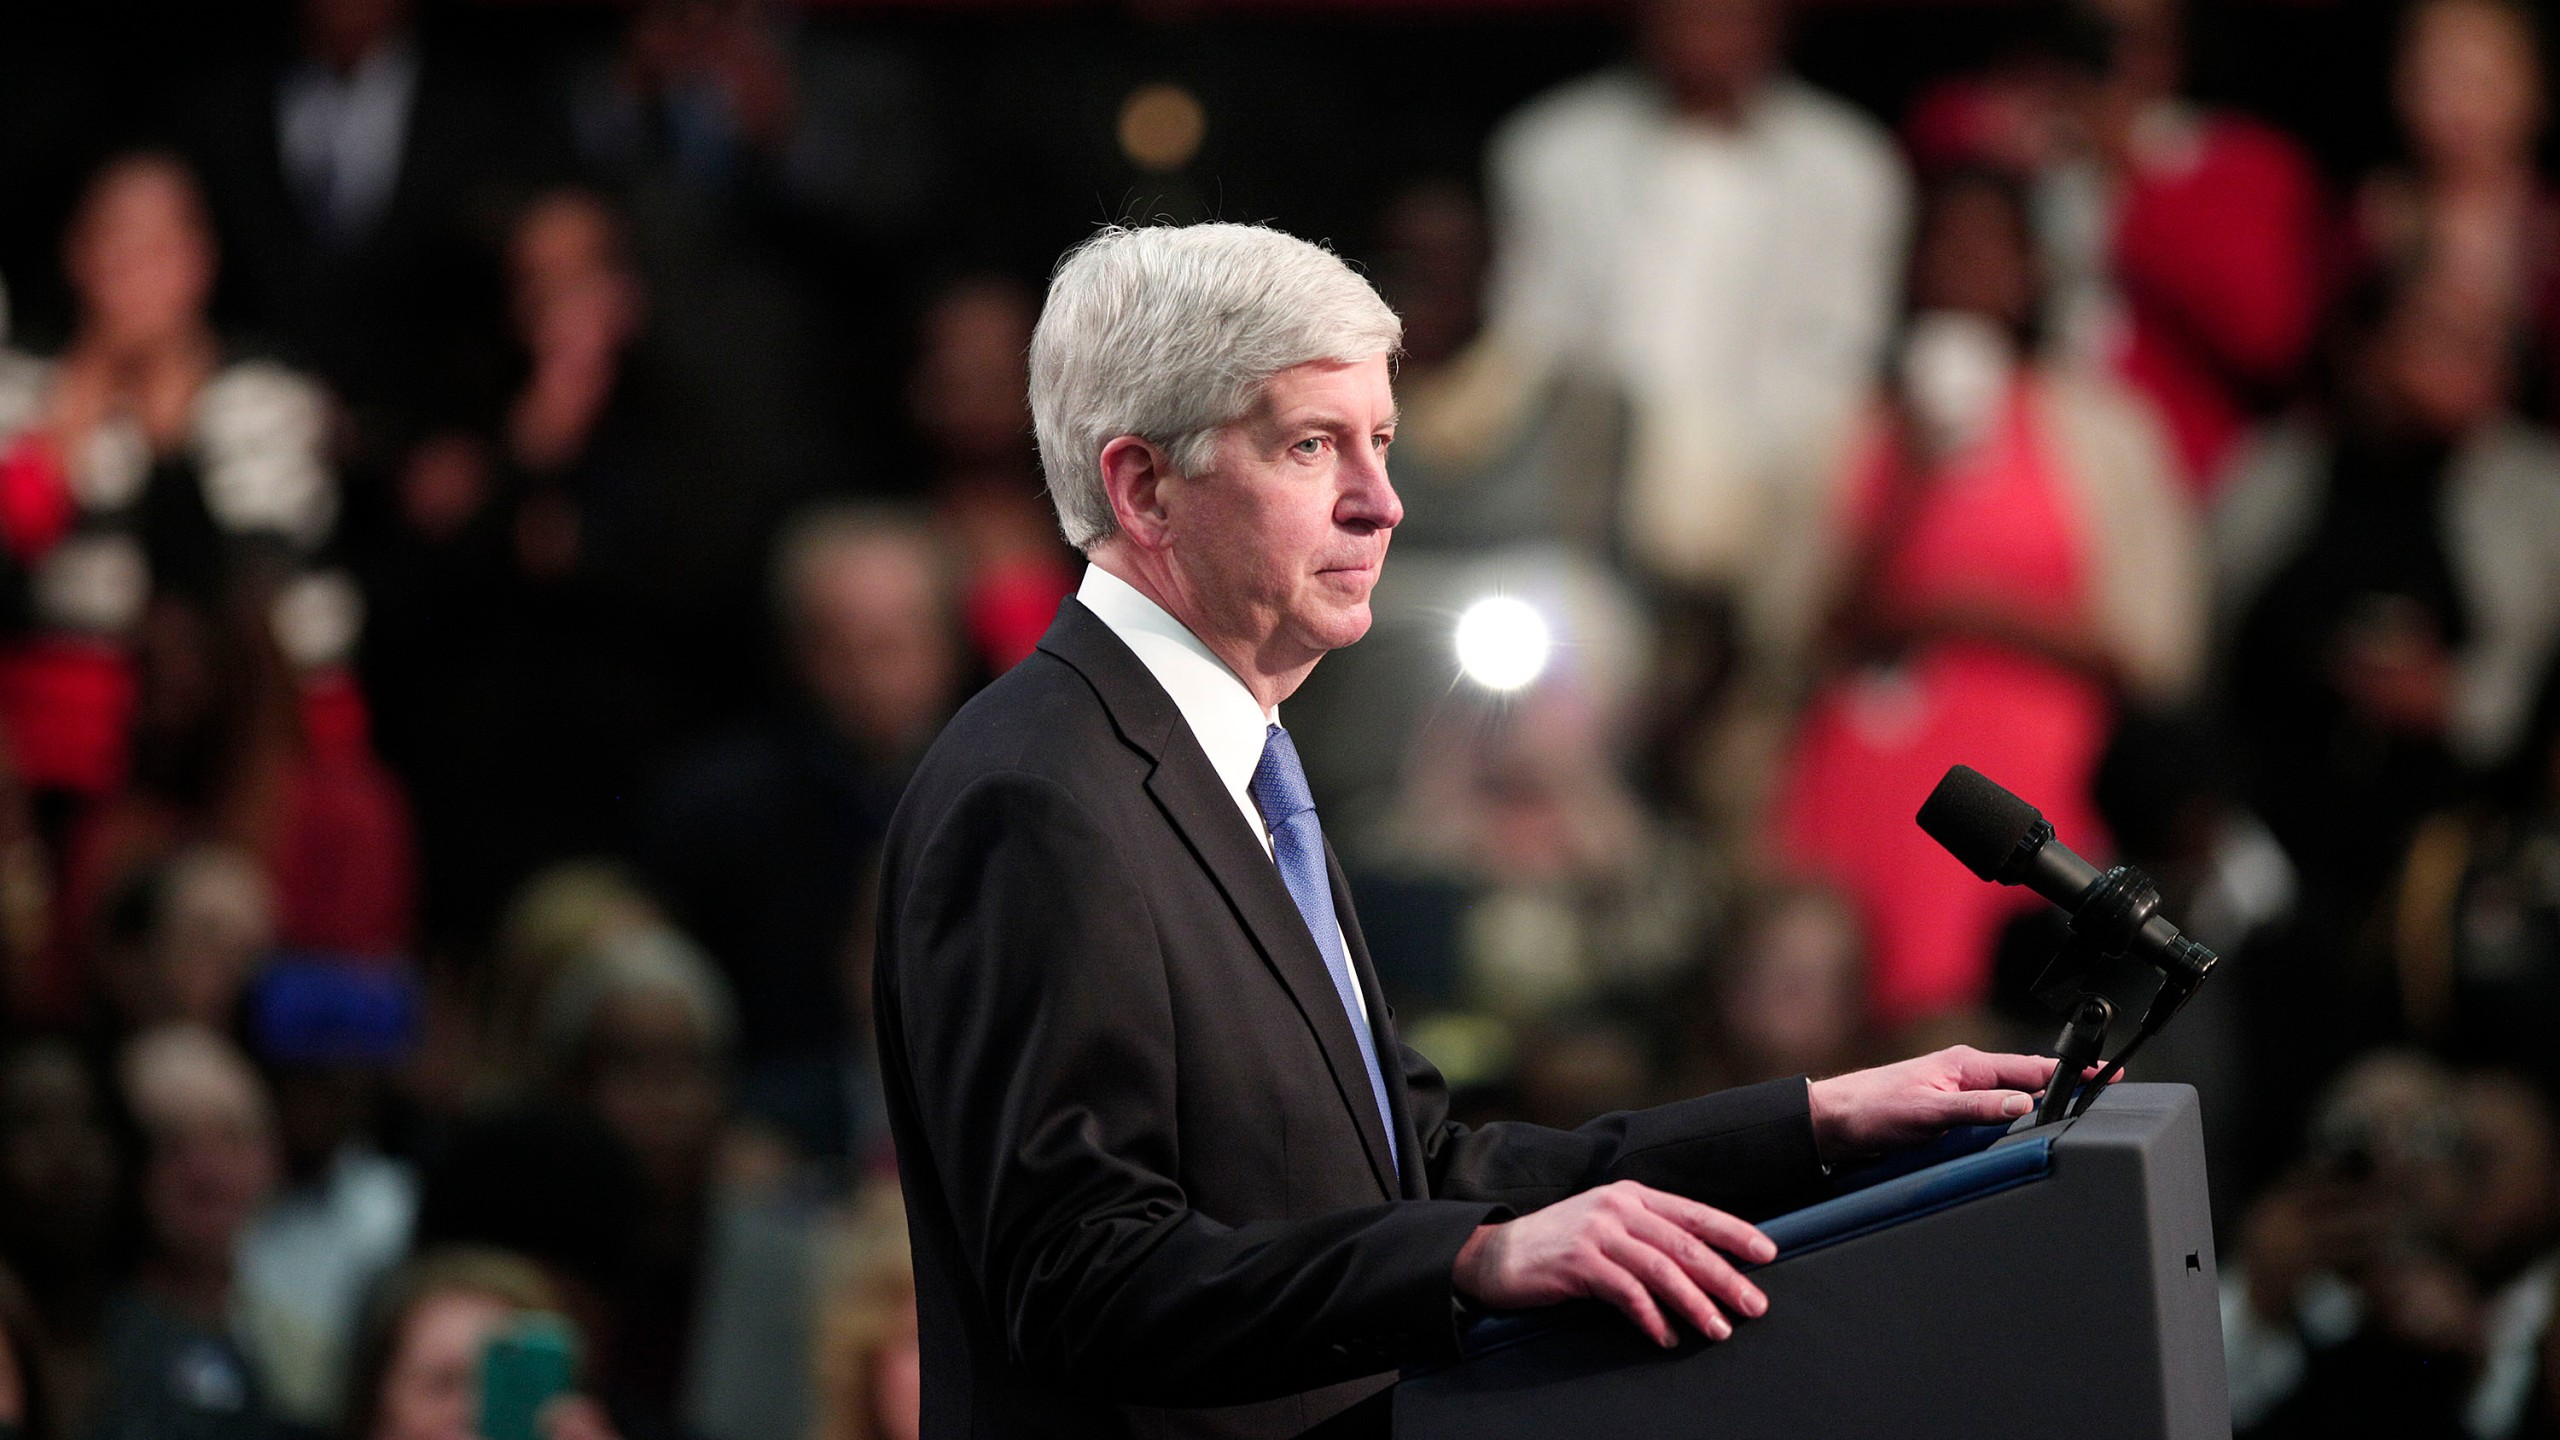 Rick Snyder listens from the stage as the crowd boos at a May 4, 2016 event addressing the water contamination in Flint, Michigan. (Credit: Bill Pugliano/Getty Images)